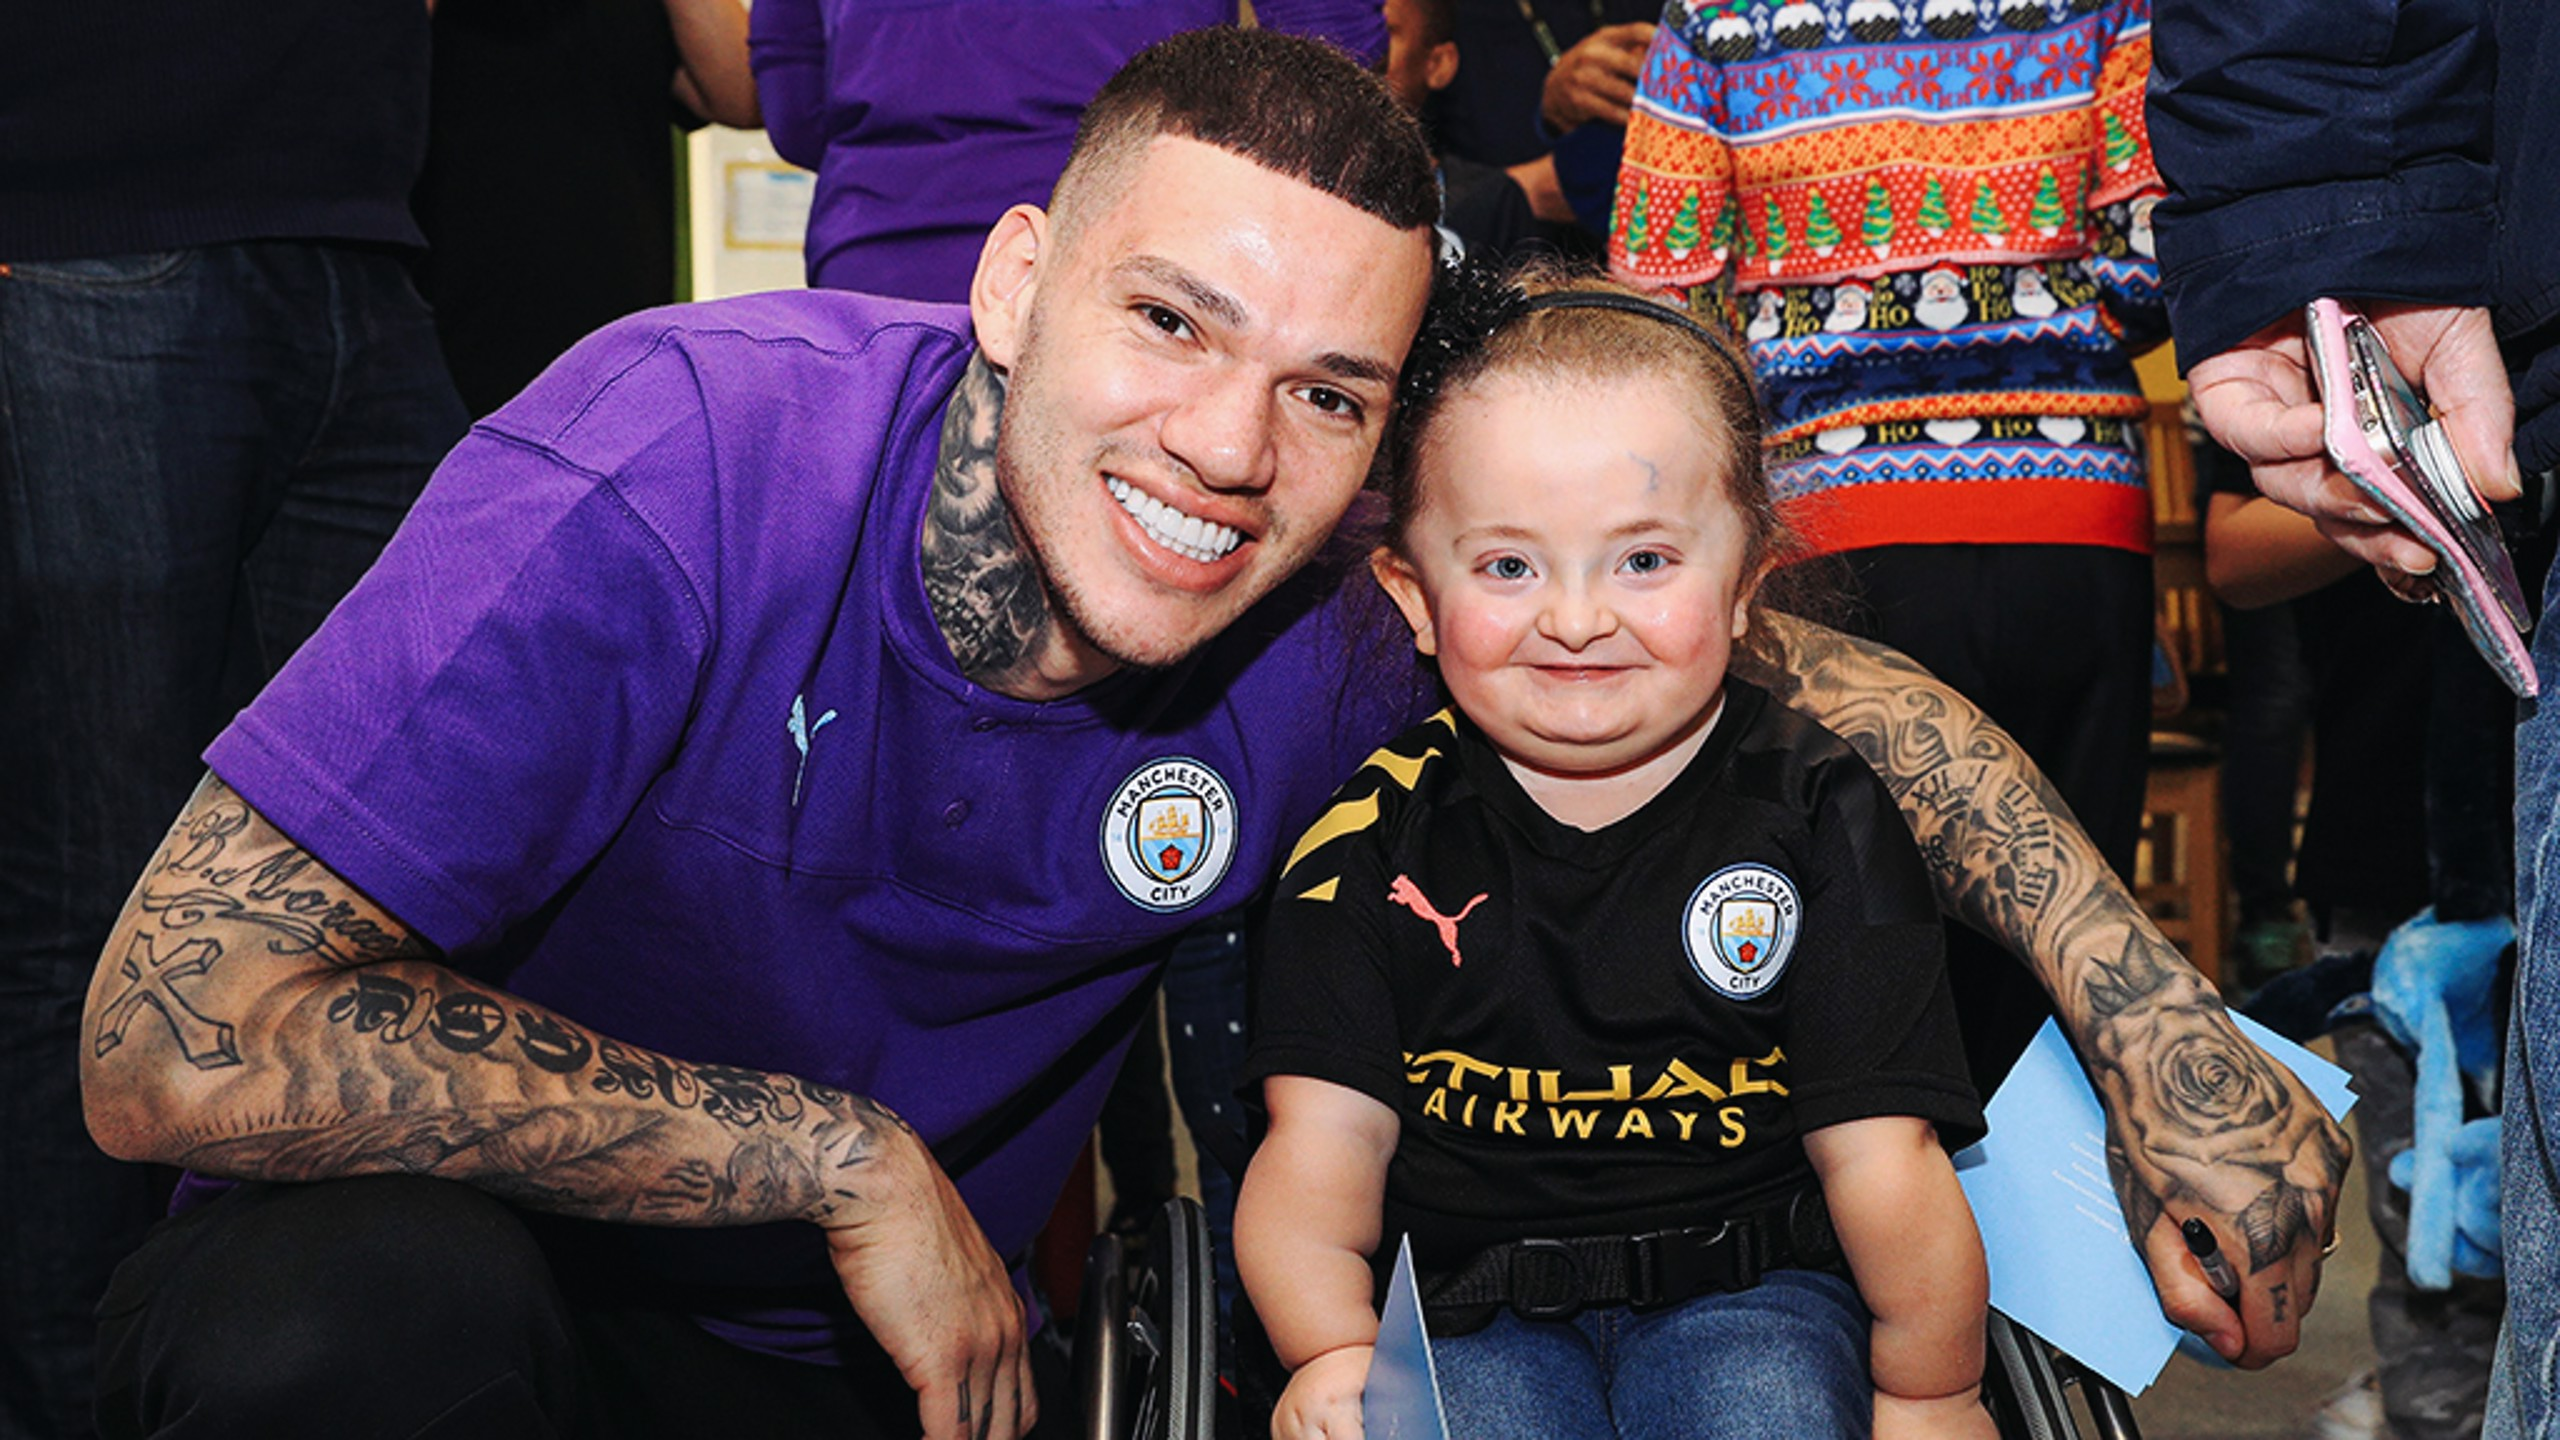 ALL SMILES: Ederson shares a special moment with one brave young patient